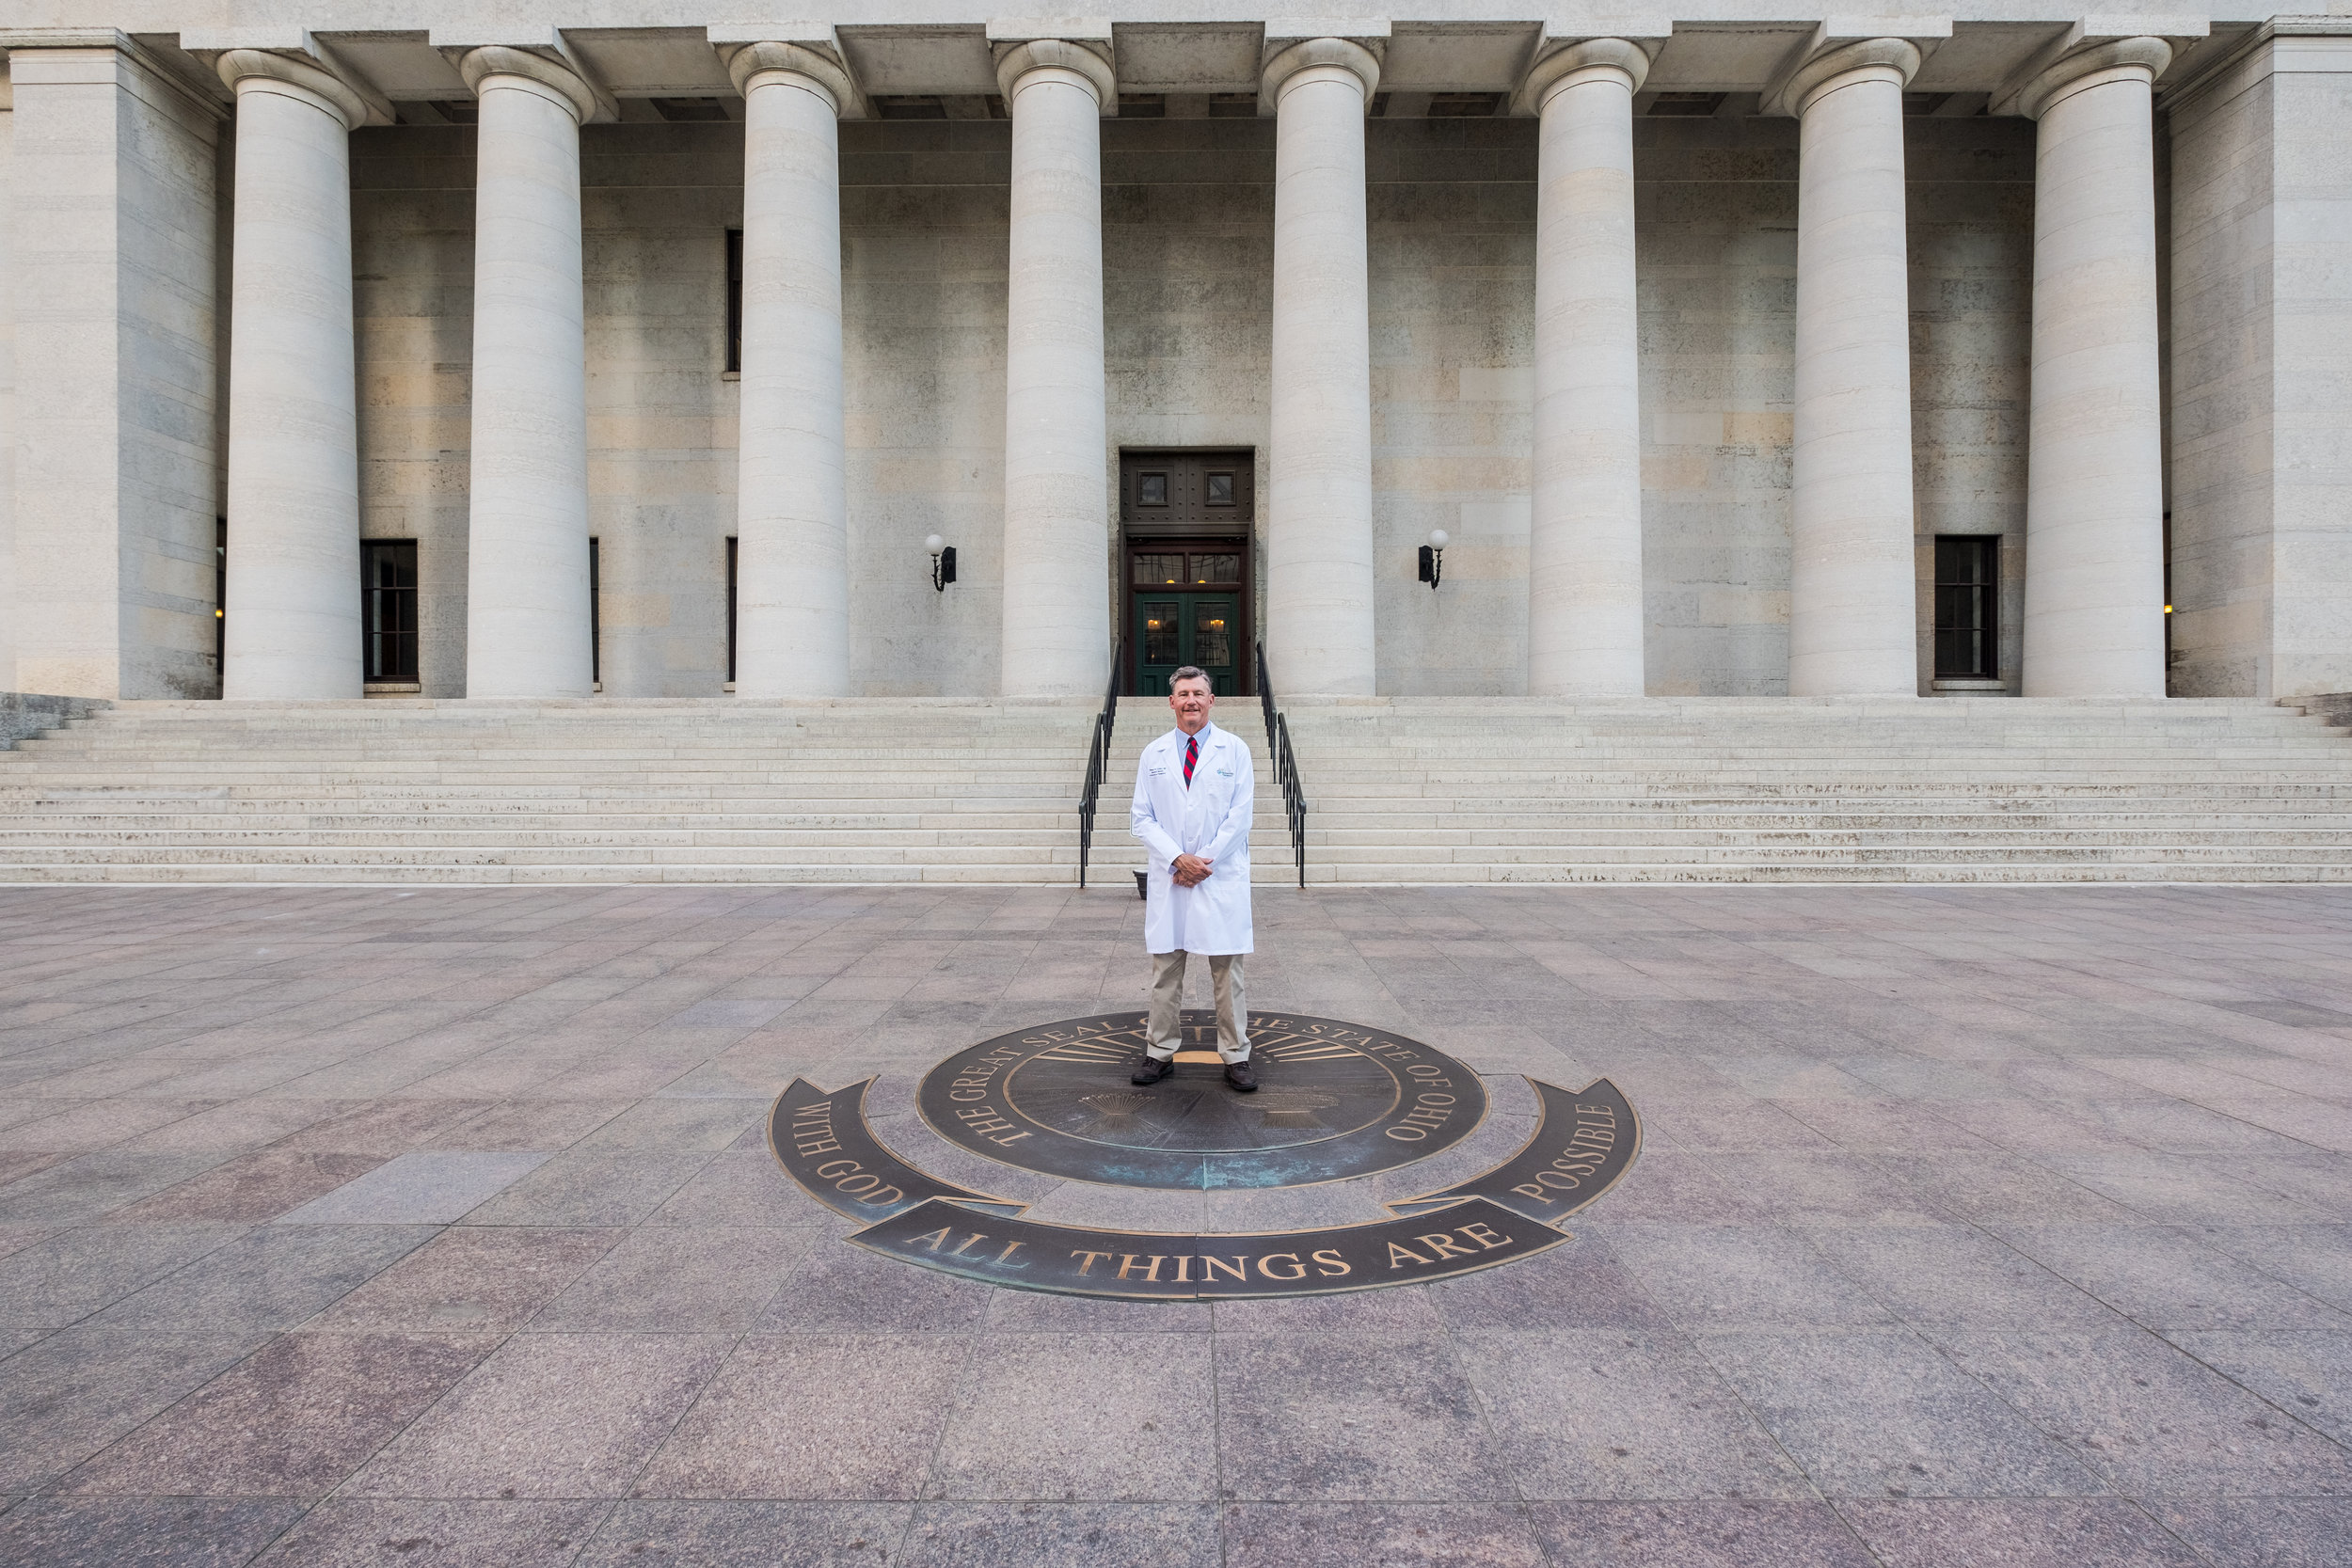 Dr. Bill Cotton (Co-Chair of the CMA Public Policy and Political Action Committee) stands in front of the Ohio Statehouse